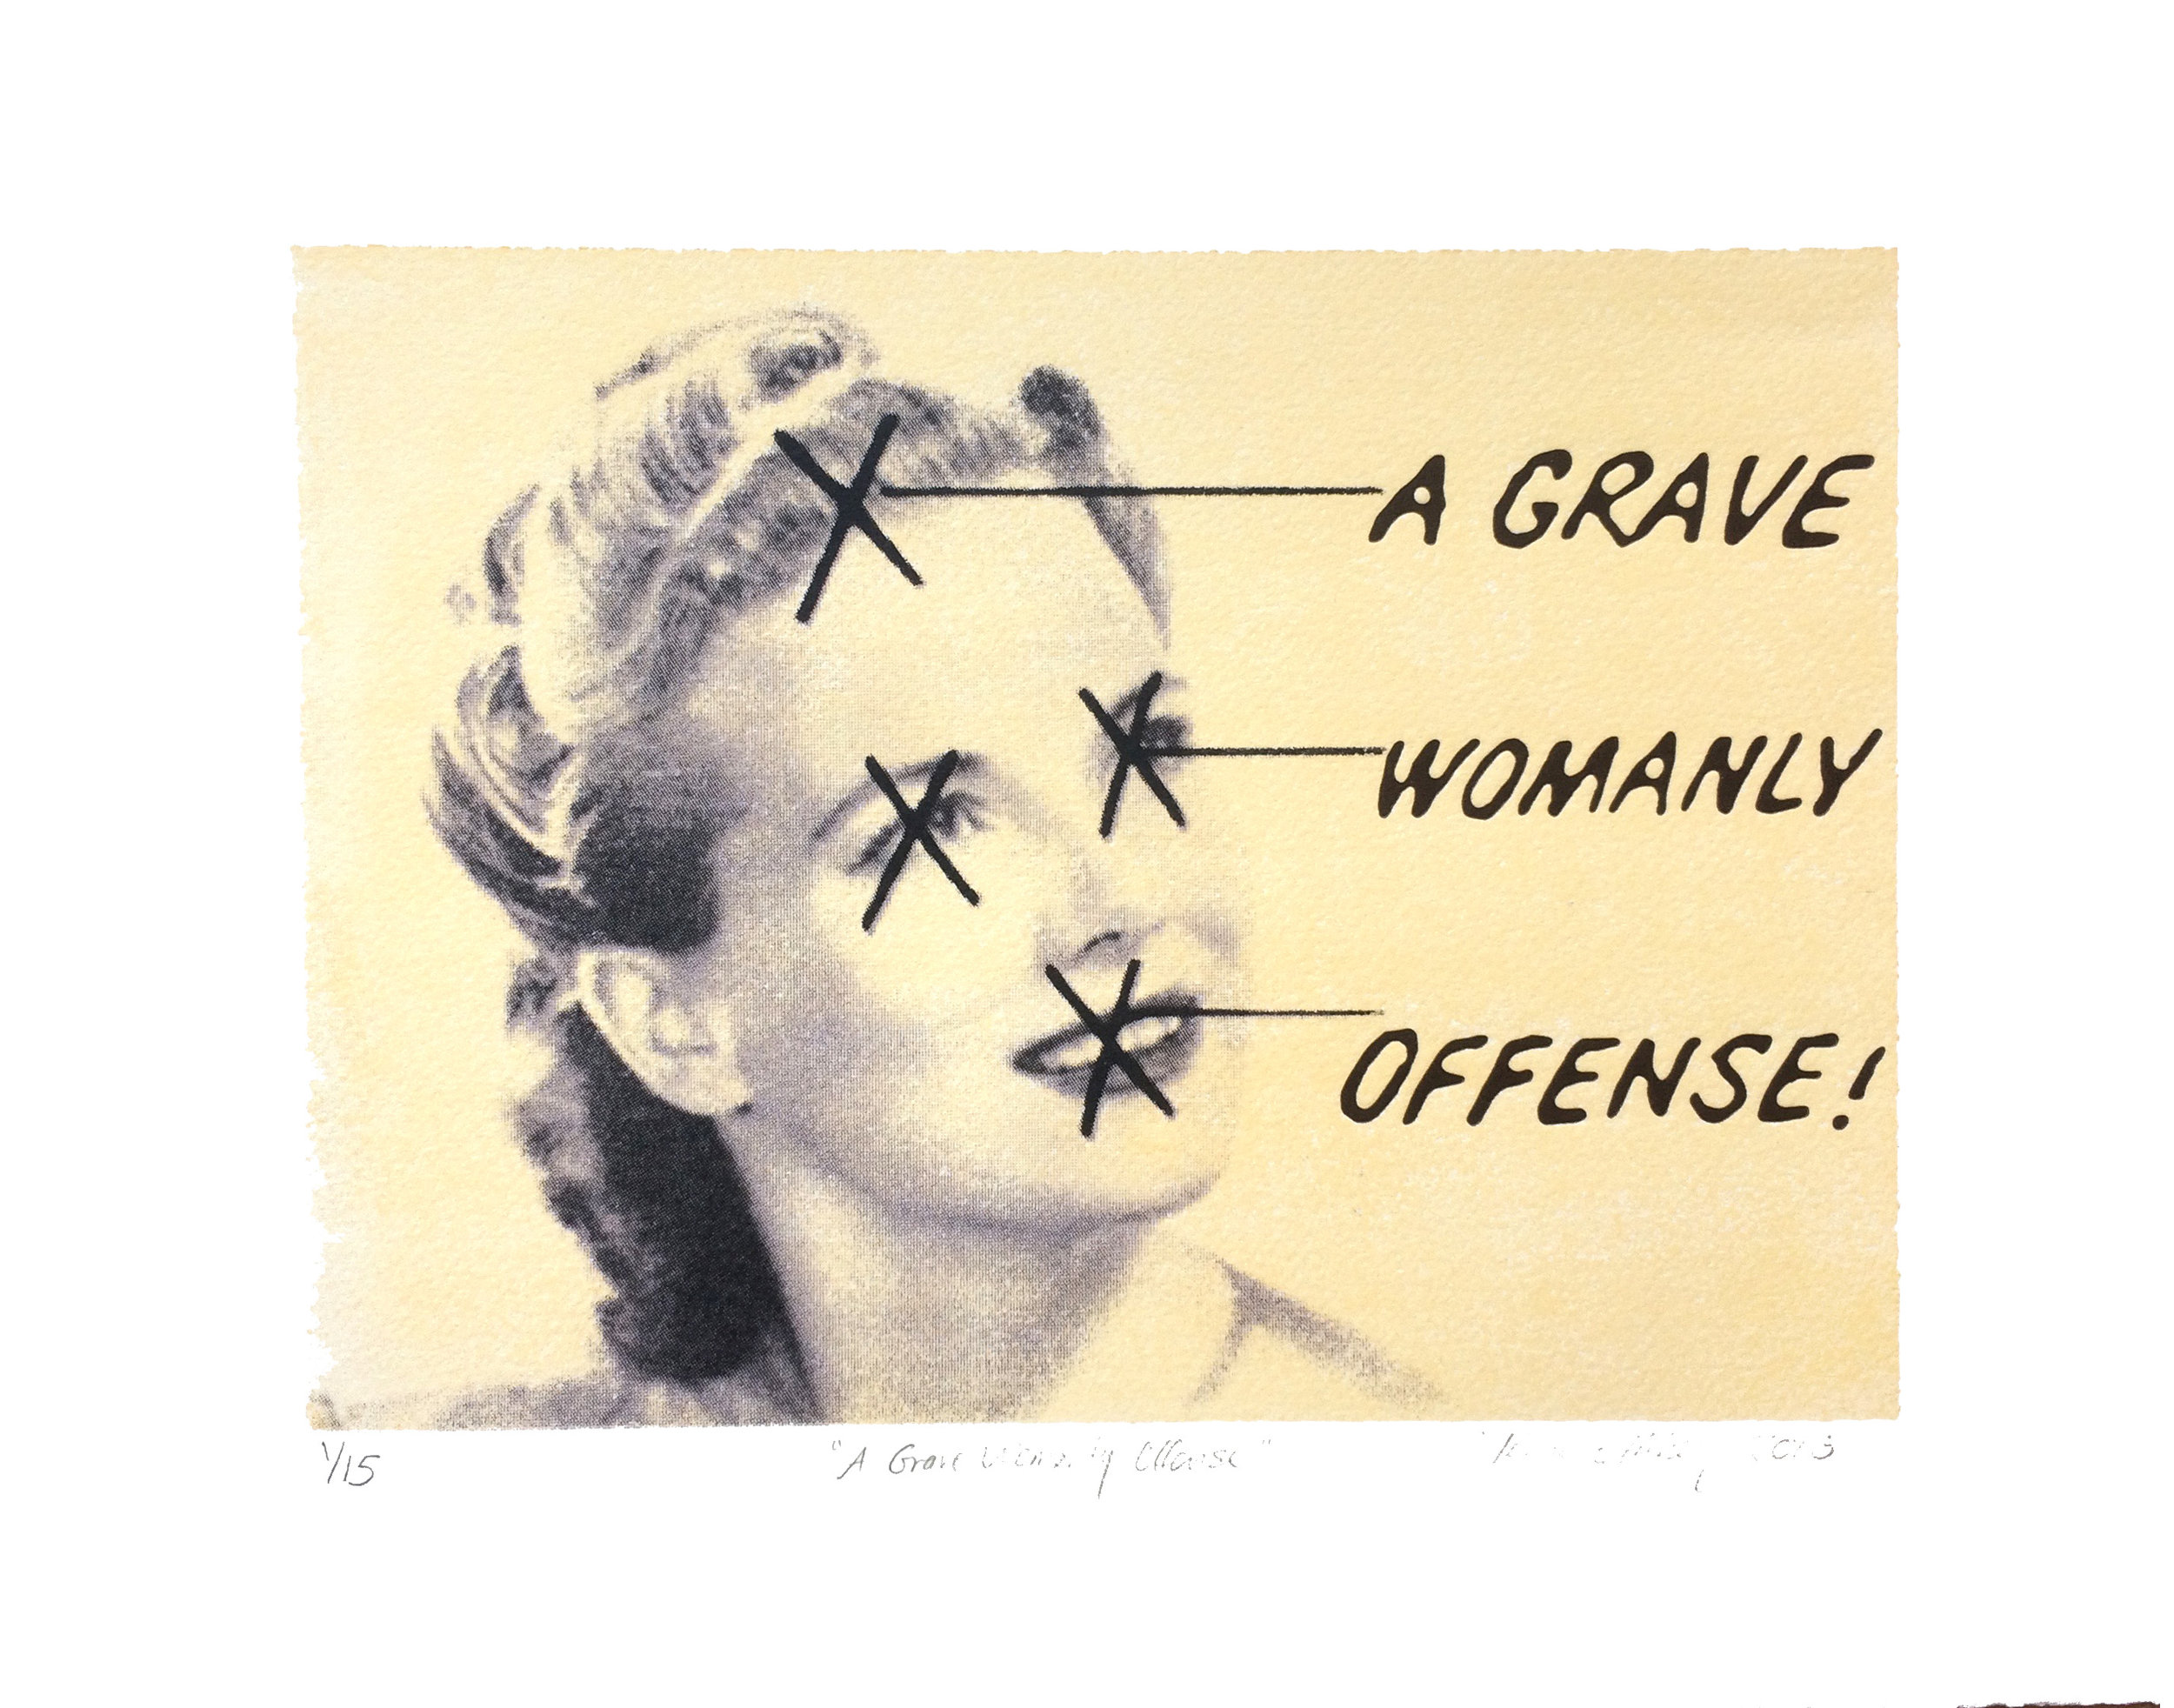 A Grave Womanly Offense